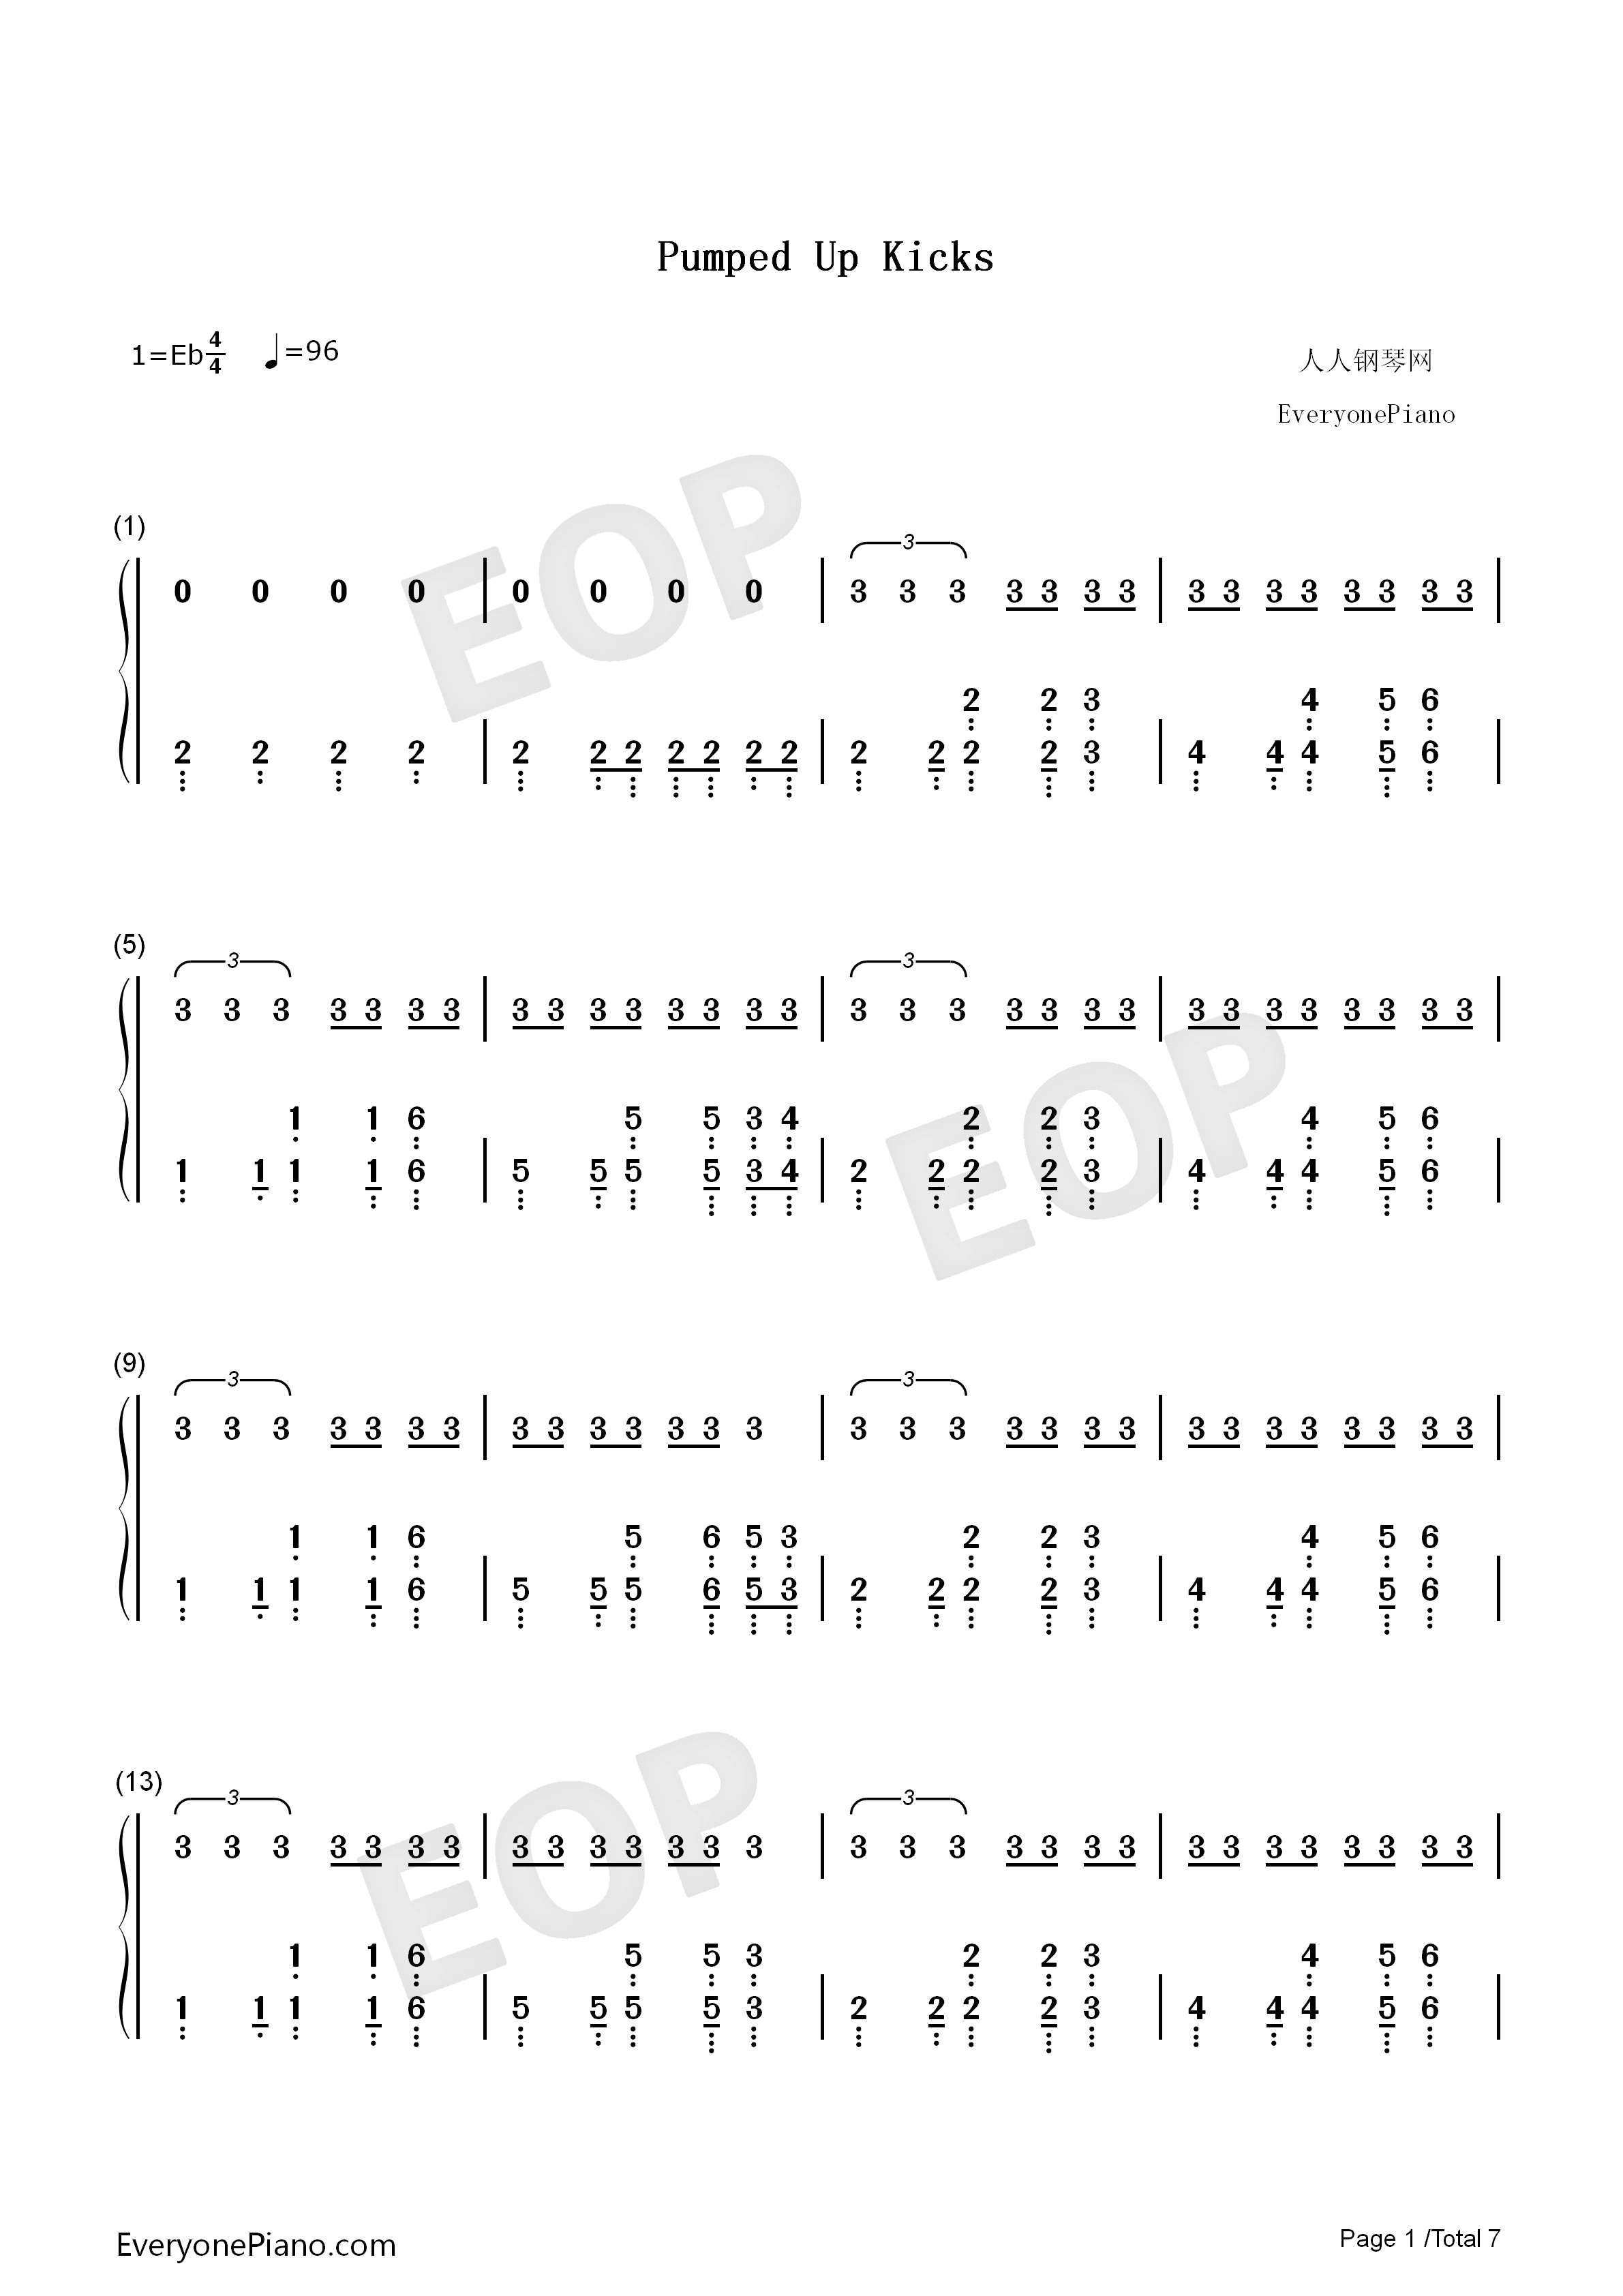 Pumped Up Kicks Chords Pumped Up Kicks Foster The People Free Piano Sheet Music Piano Chords